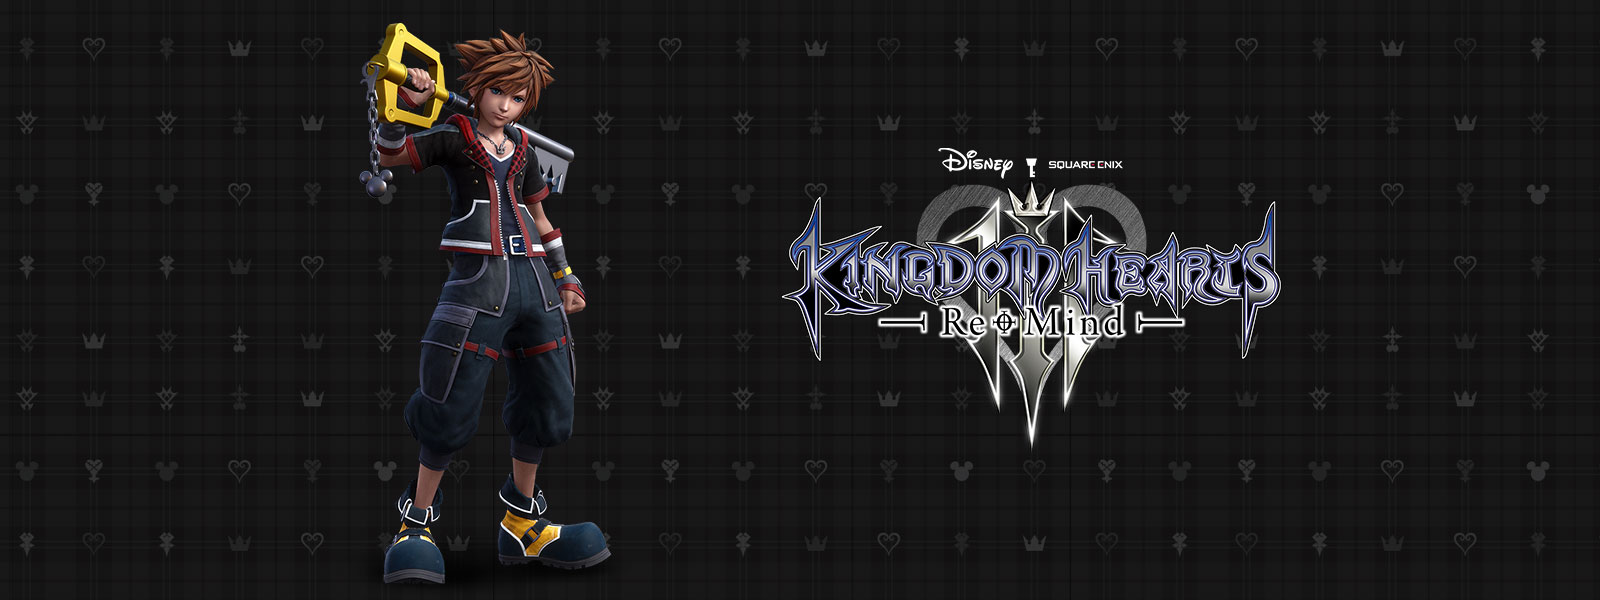 Disney Kingdom Hearts 3, Re-Mind, Sora stands against a black patterned background with the Keyblade rested on his shoulder.